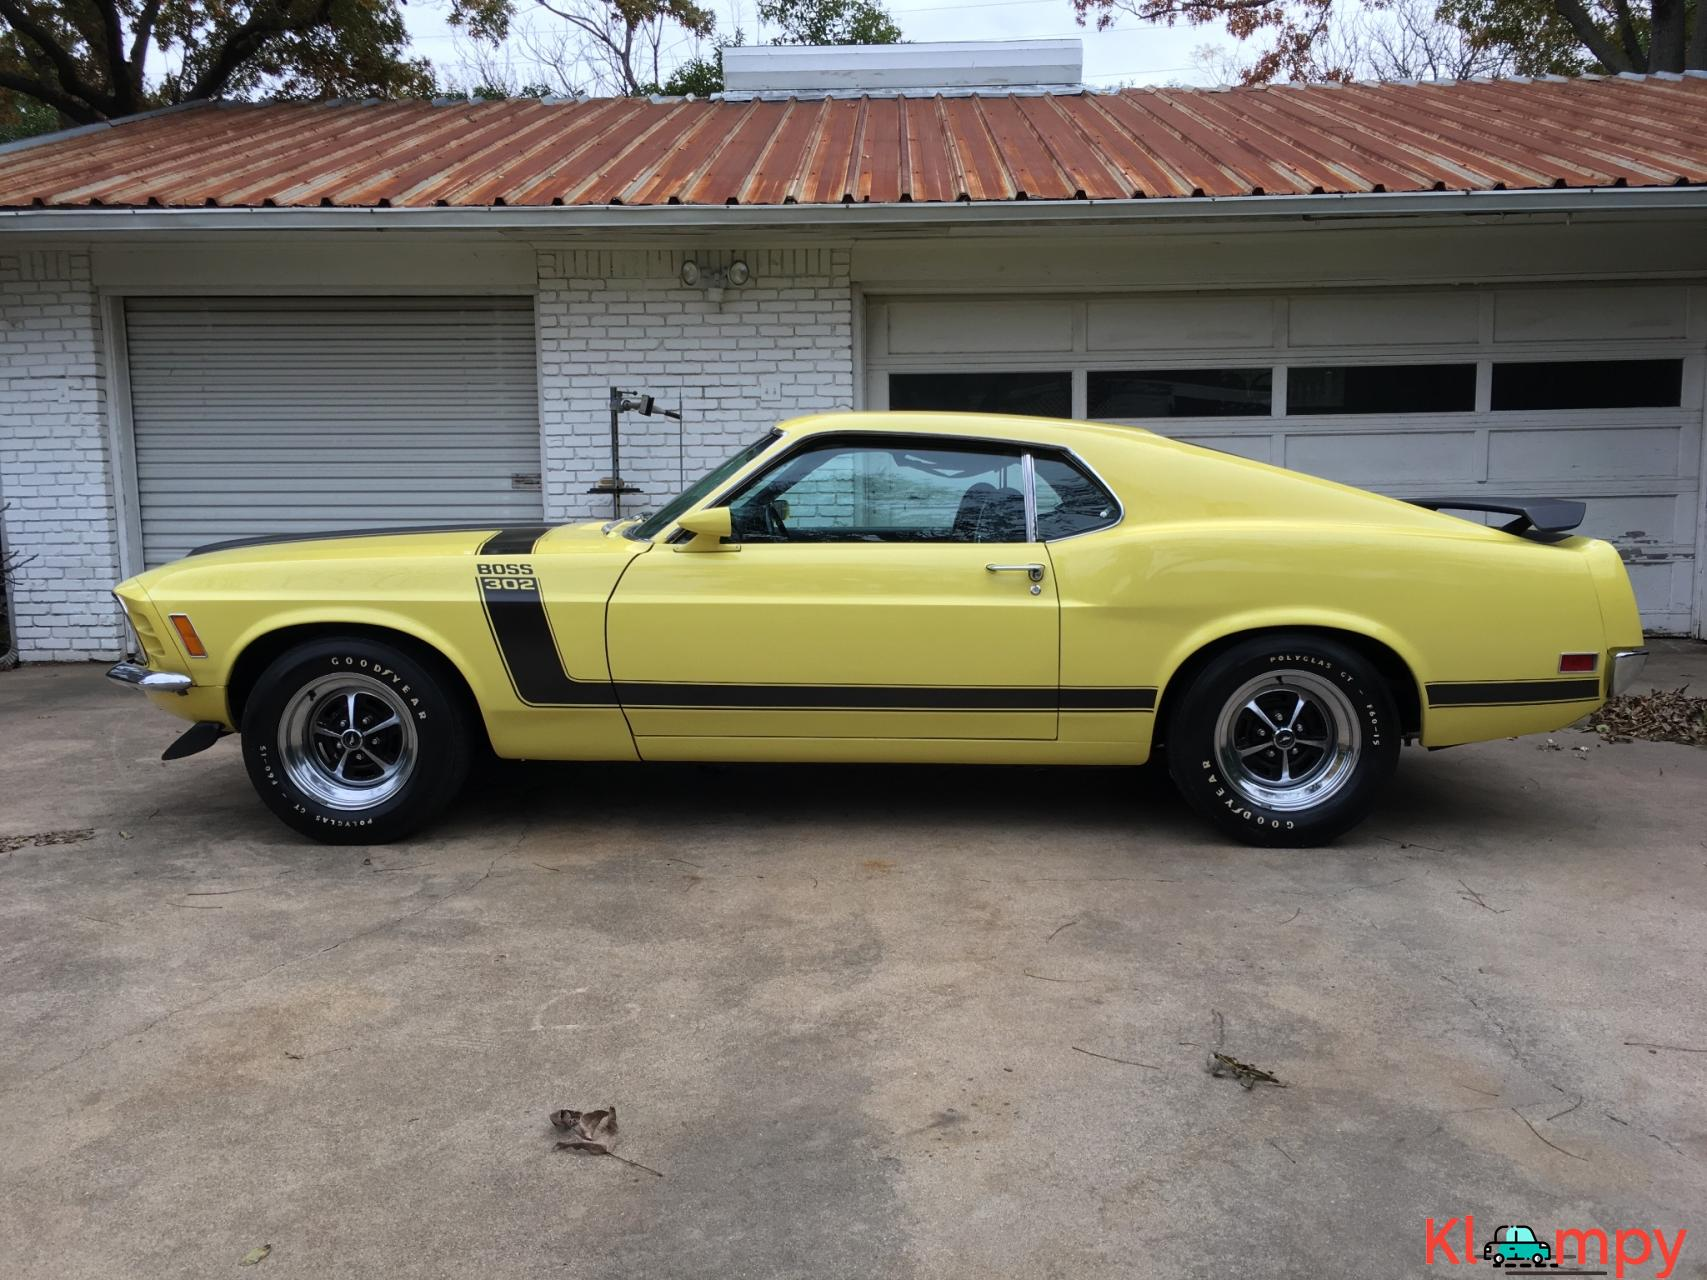 1970 Ford Mustang Boss 302 Largely Original - 13/19